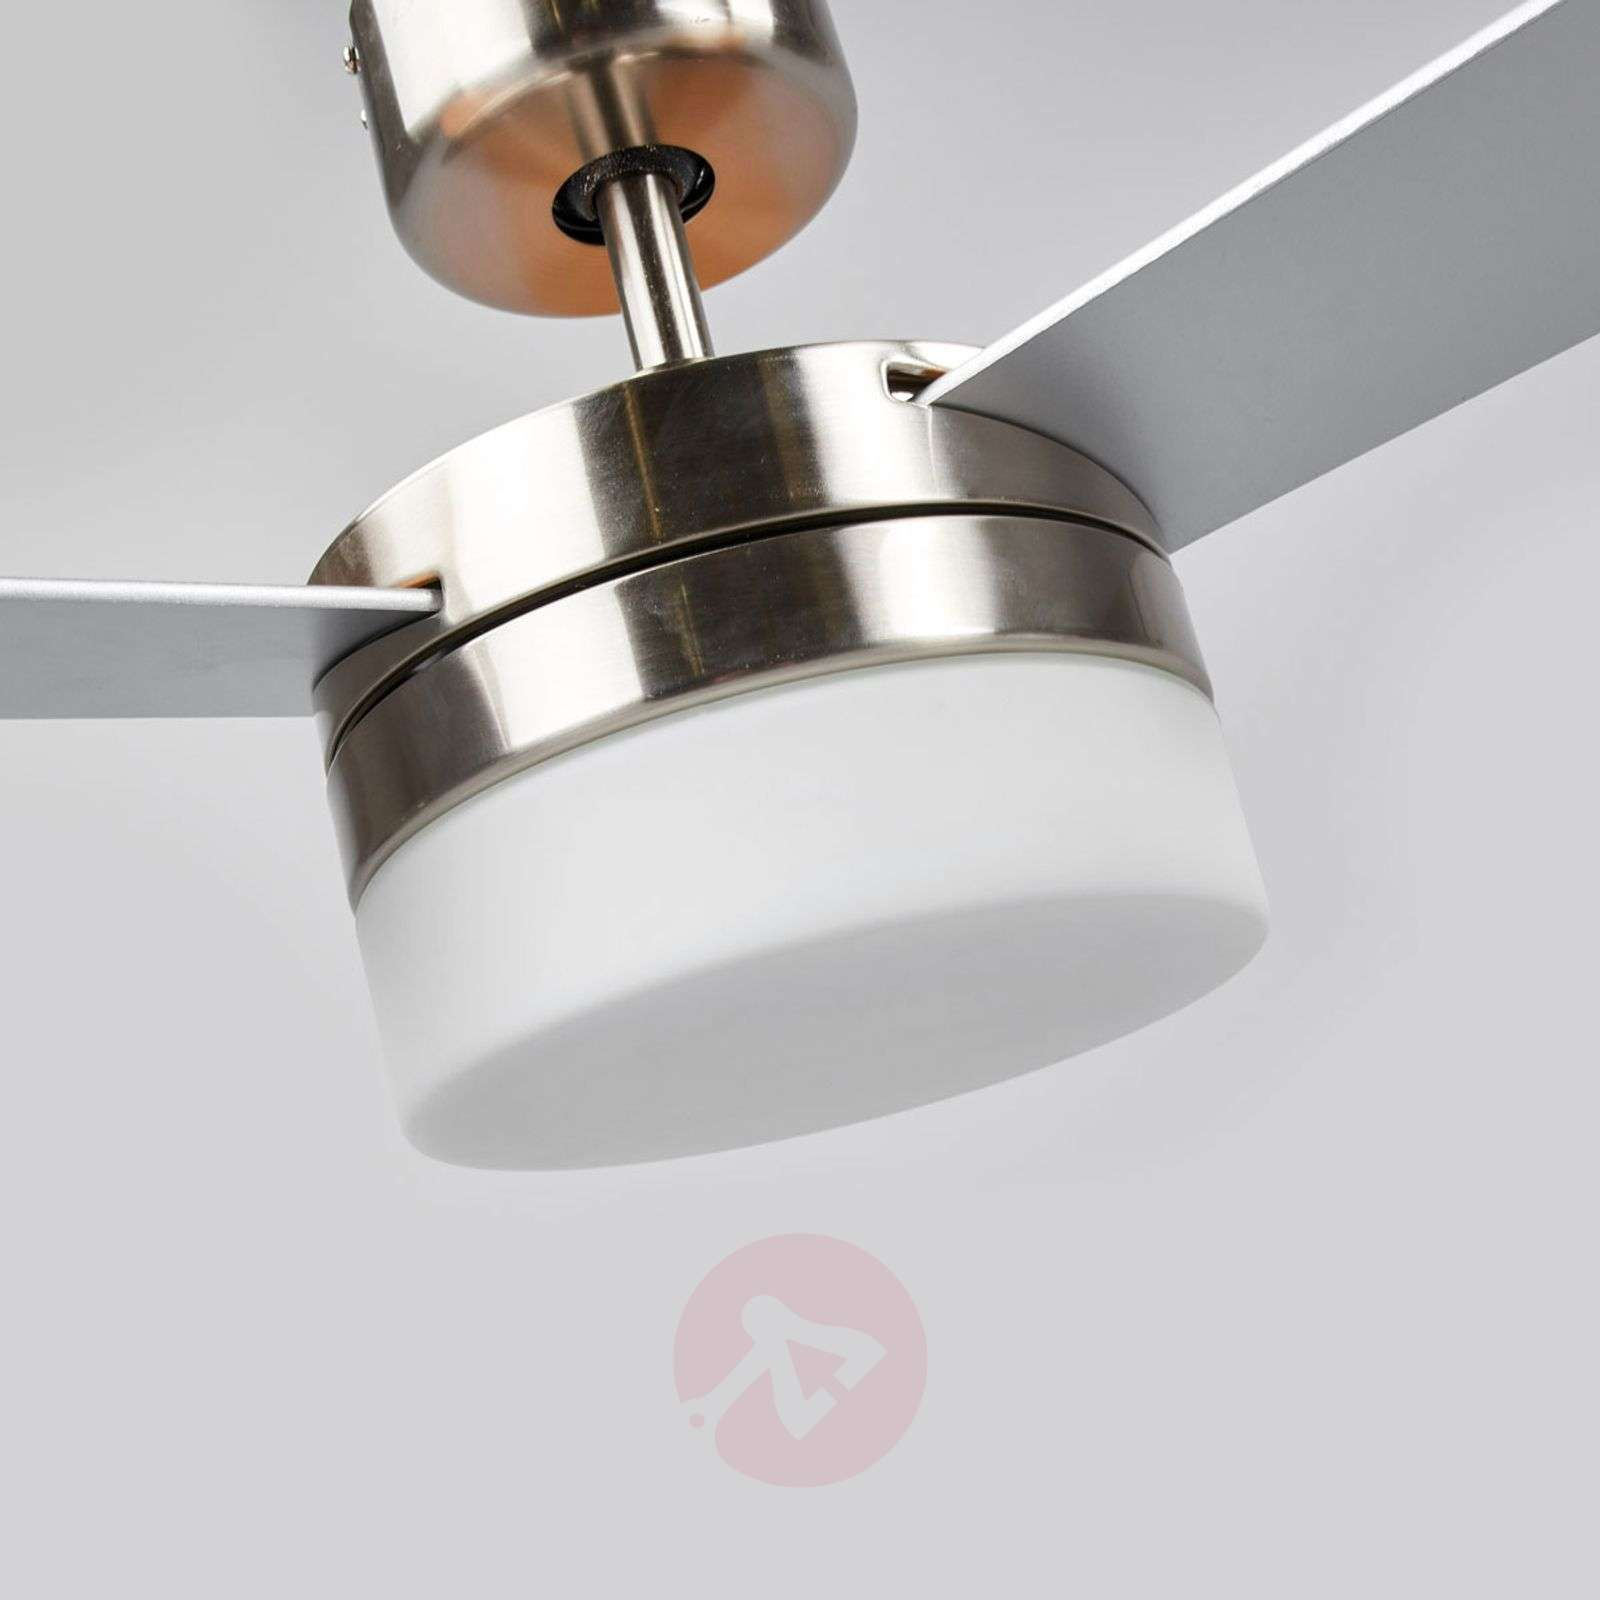 Alvin three-blade ceiling fan with light-4018105-014